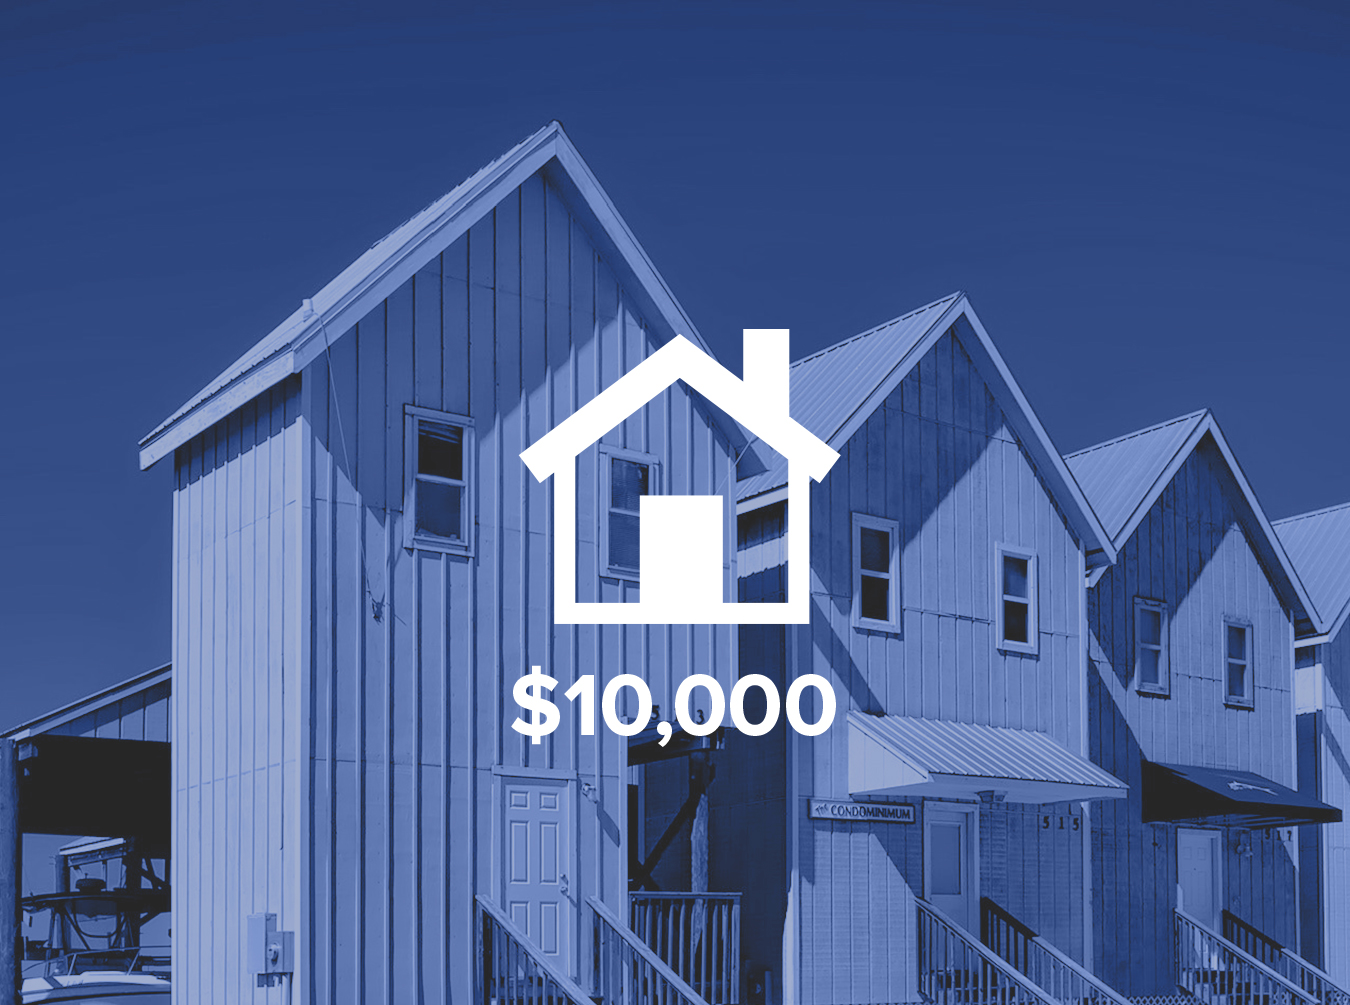 - The cost to build a 500 square foot structure to give a homeless person their own home.